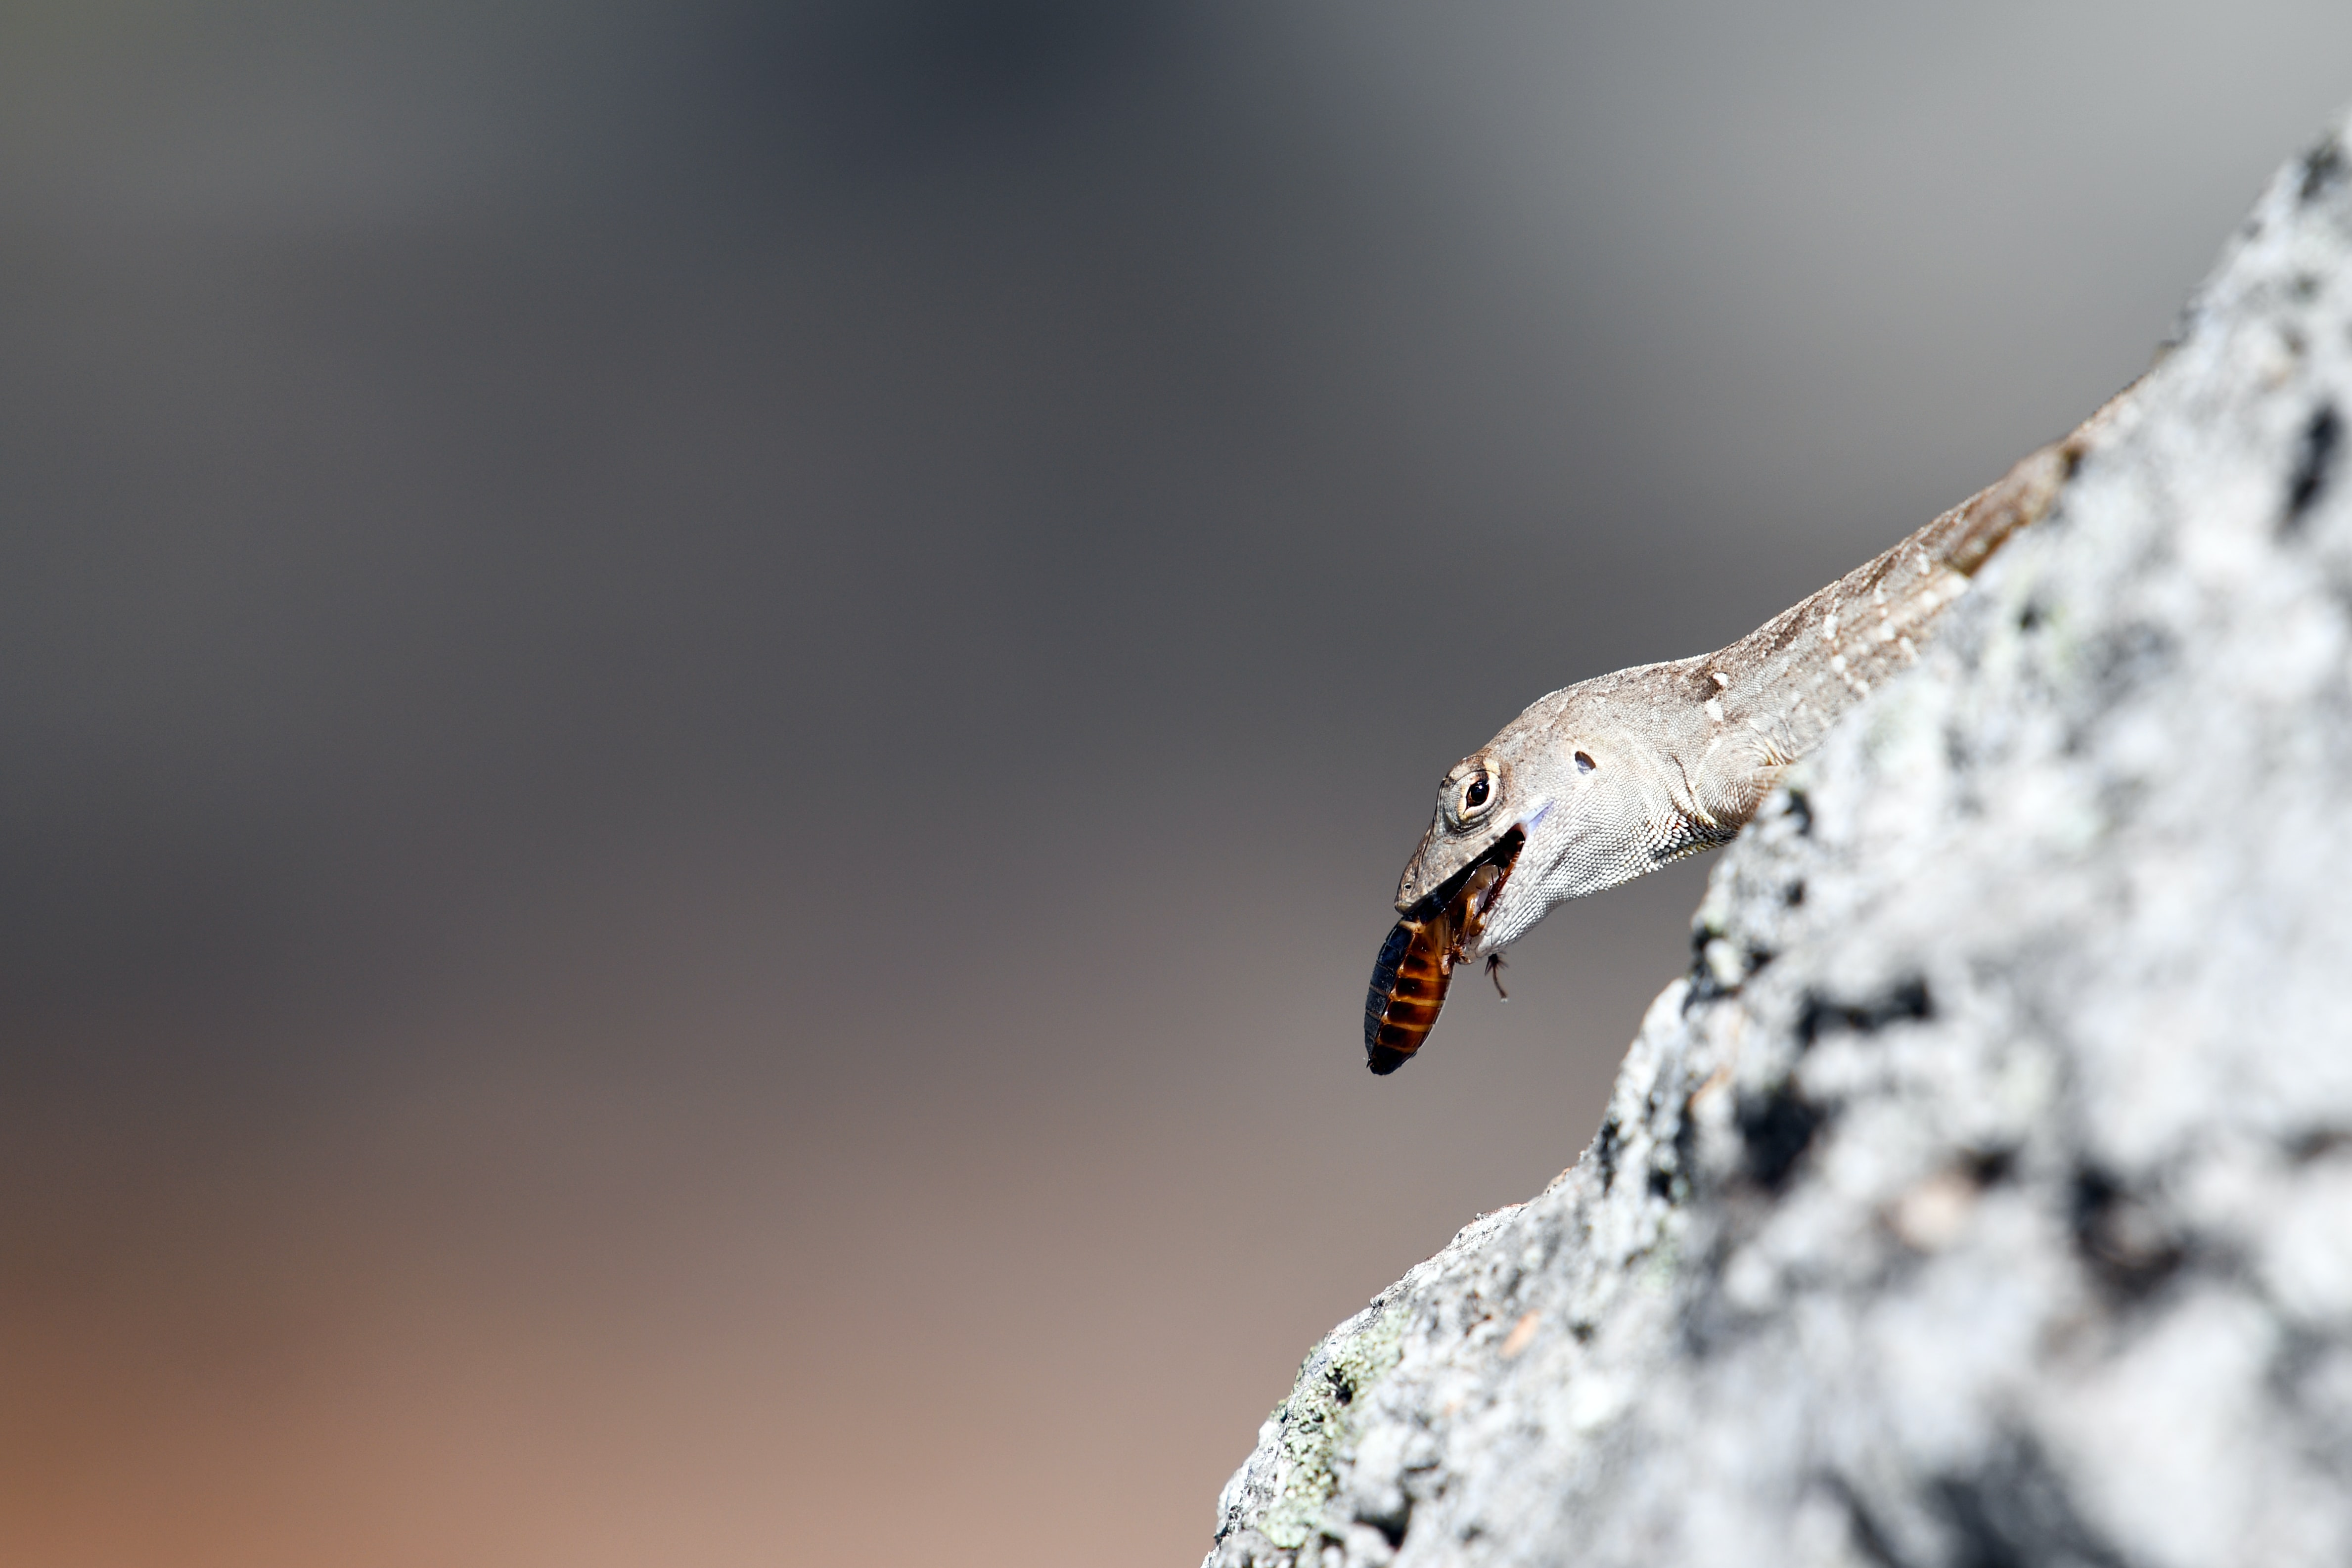 Hungry lizard eats an insect while standing on a rock